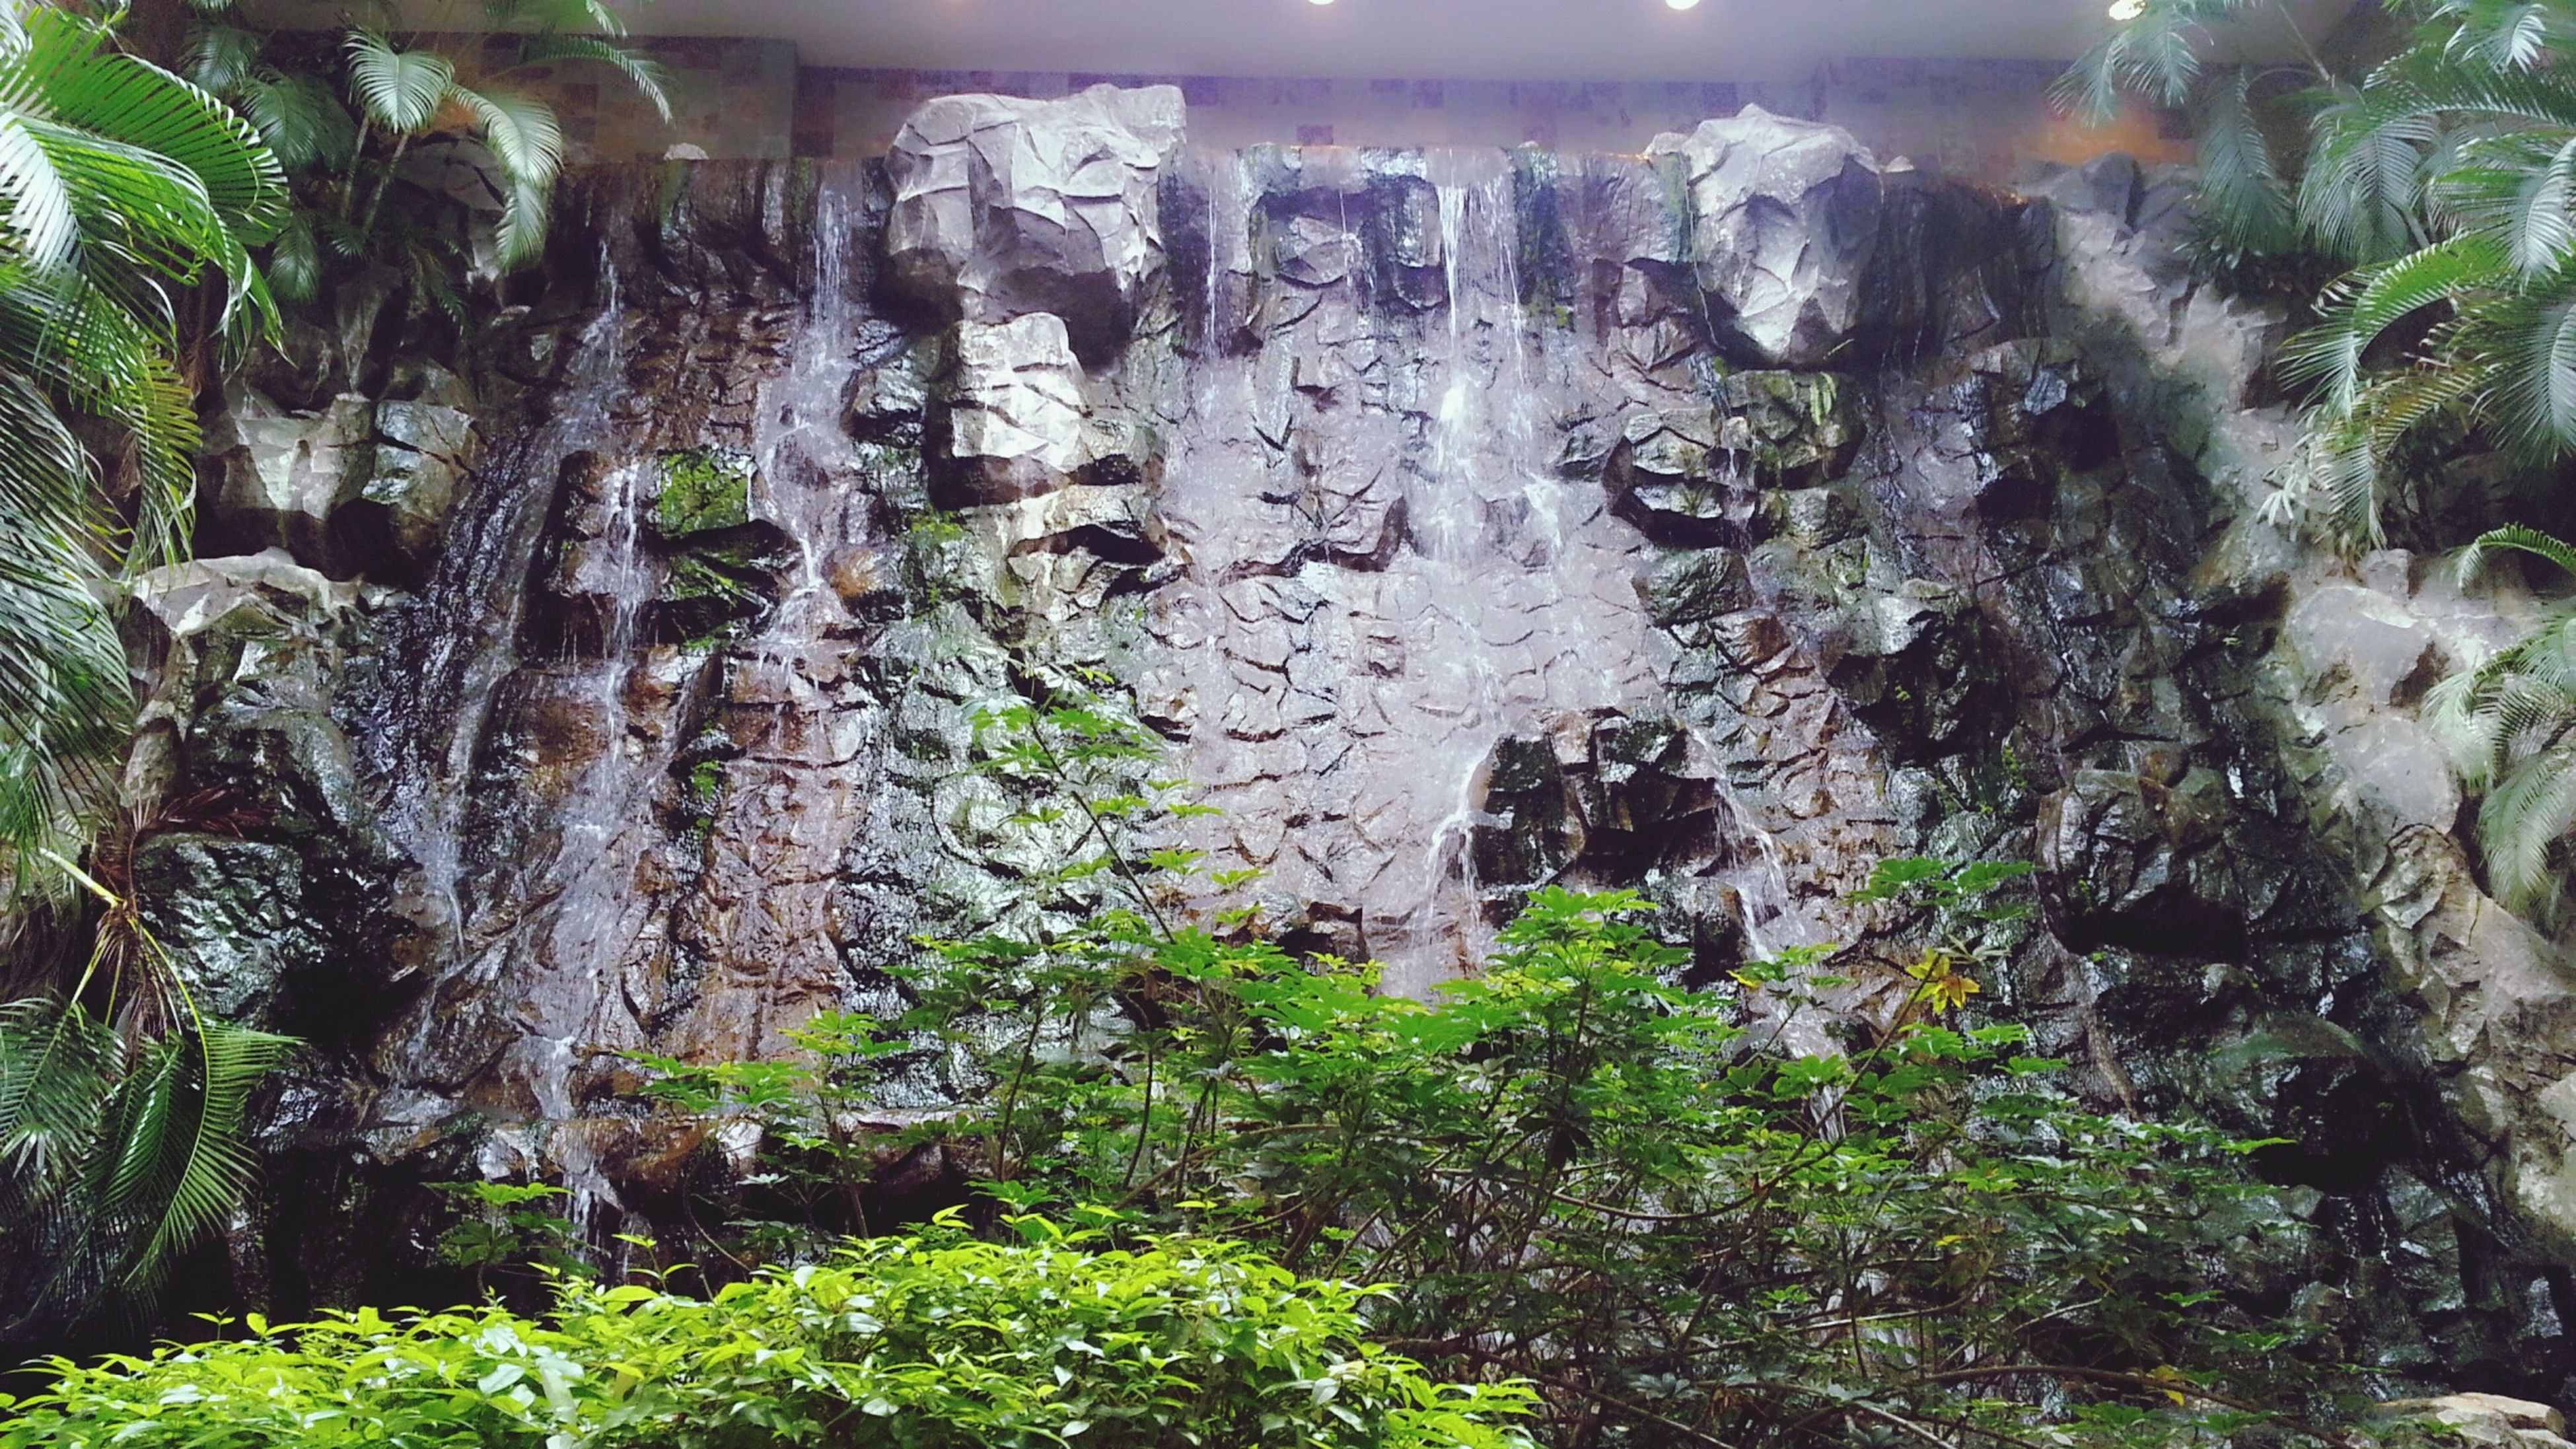 rock - object, plant, growth, tree, nature, moss, rock formation, textured, waterfall, day, outdoors, beauty in nature, green color, rock, forest, tree trunk, high angle view, close-up, no people, sunlight